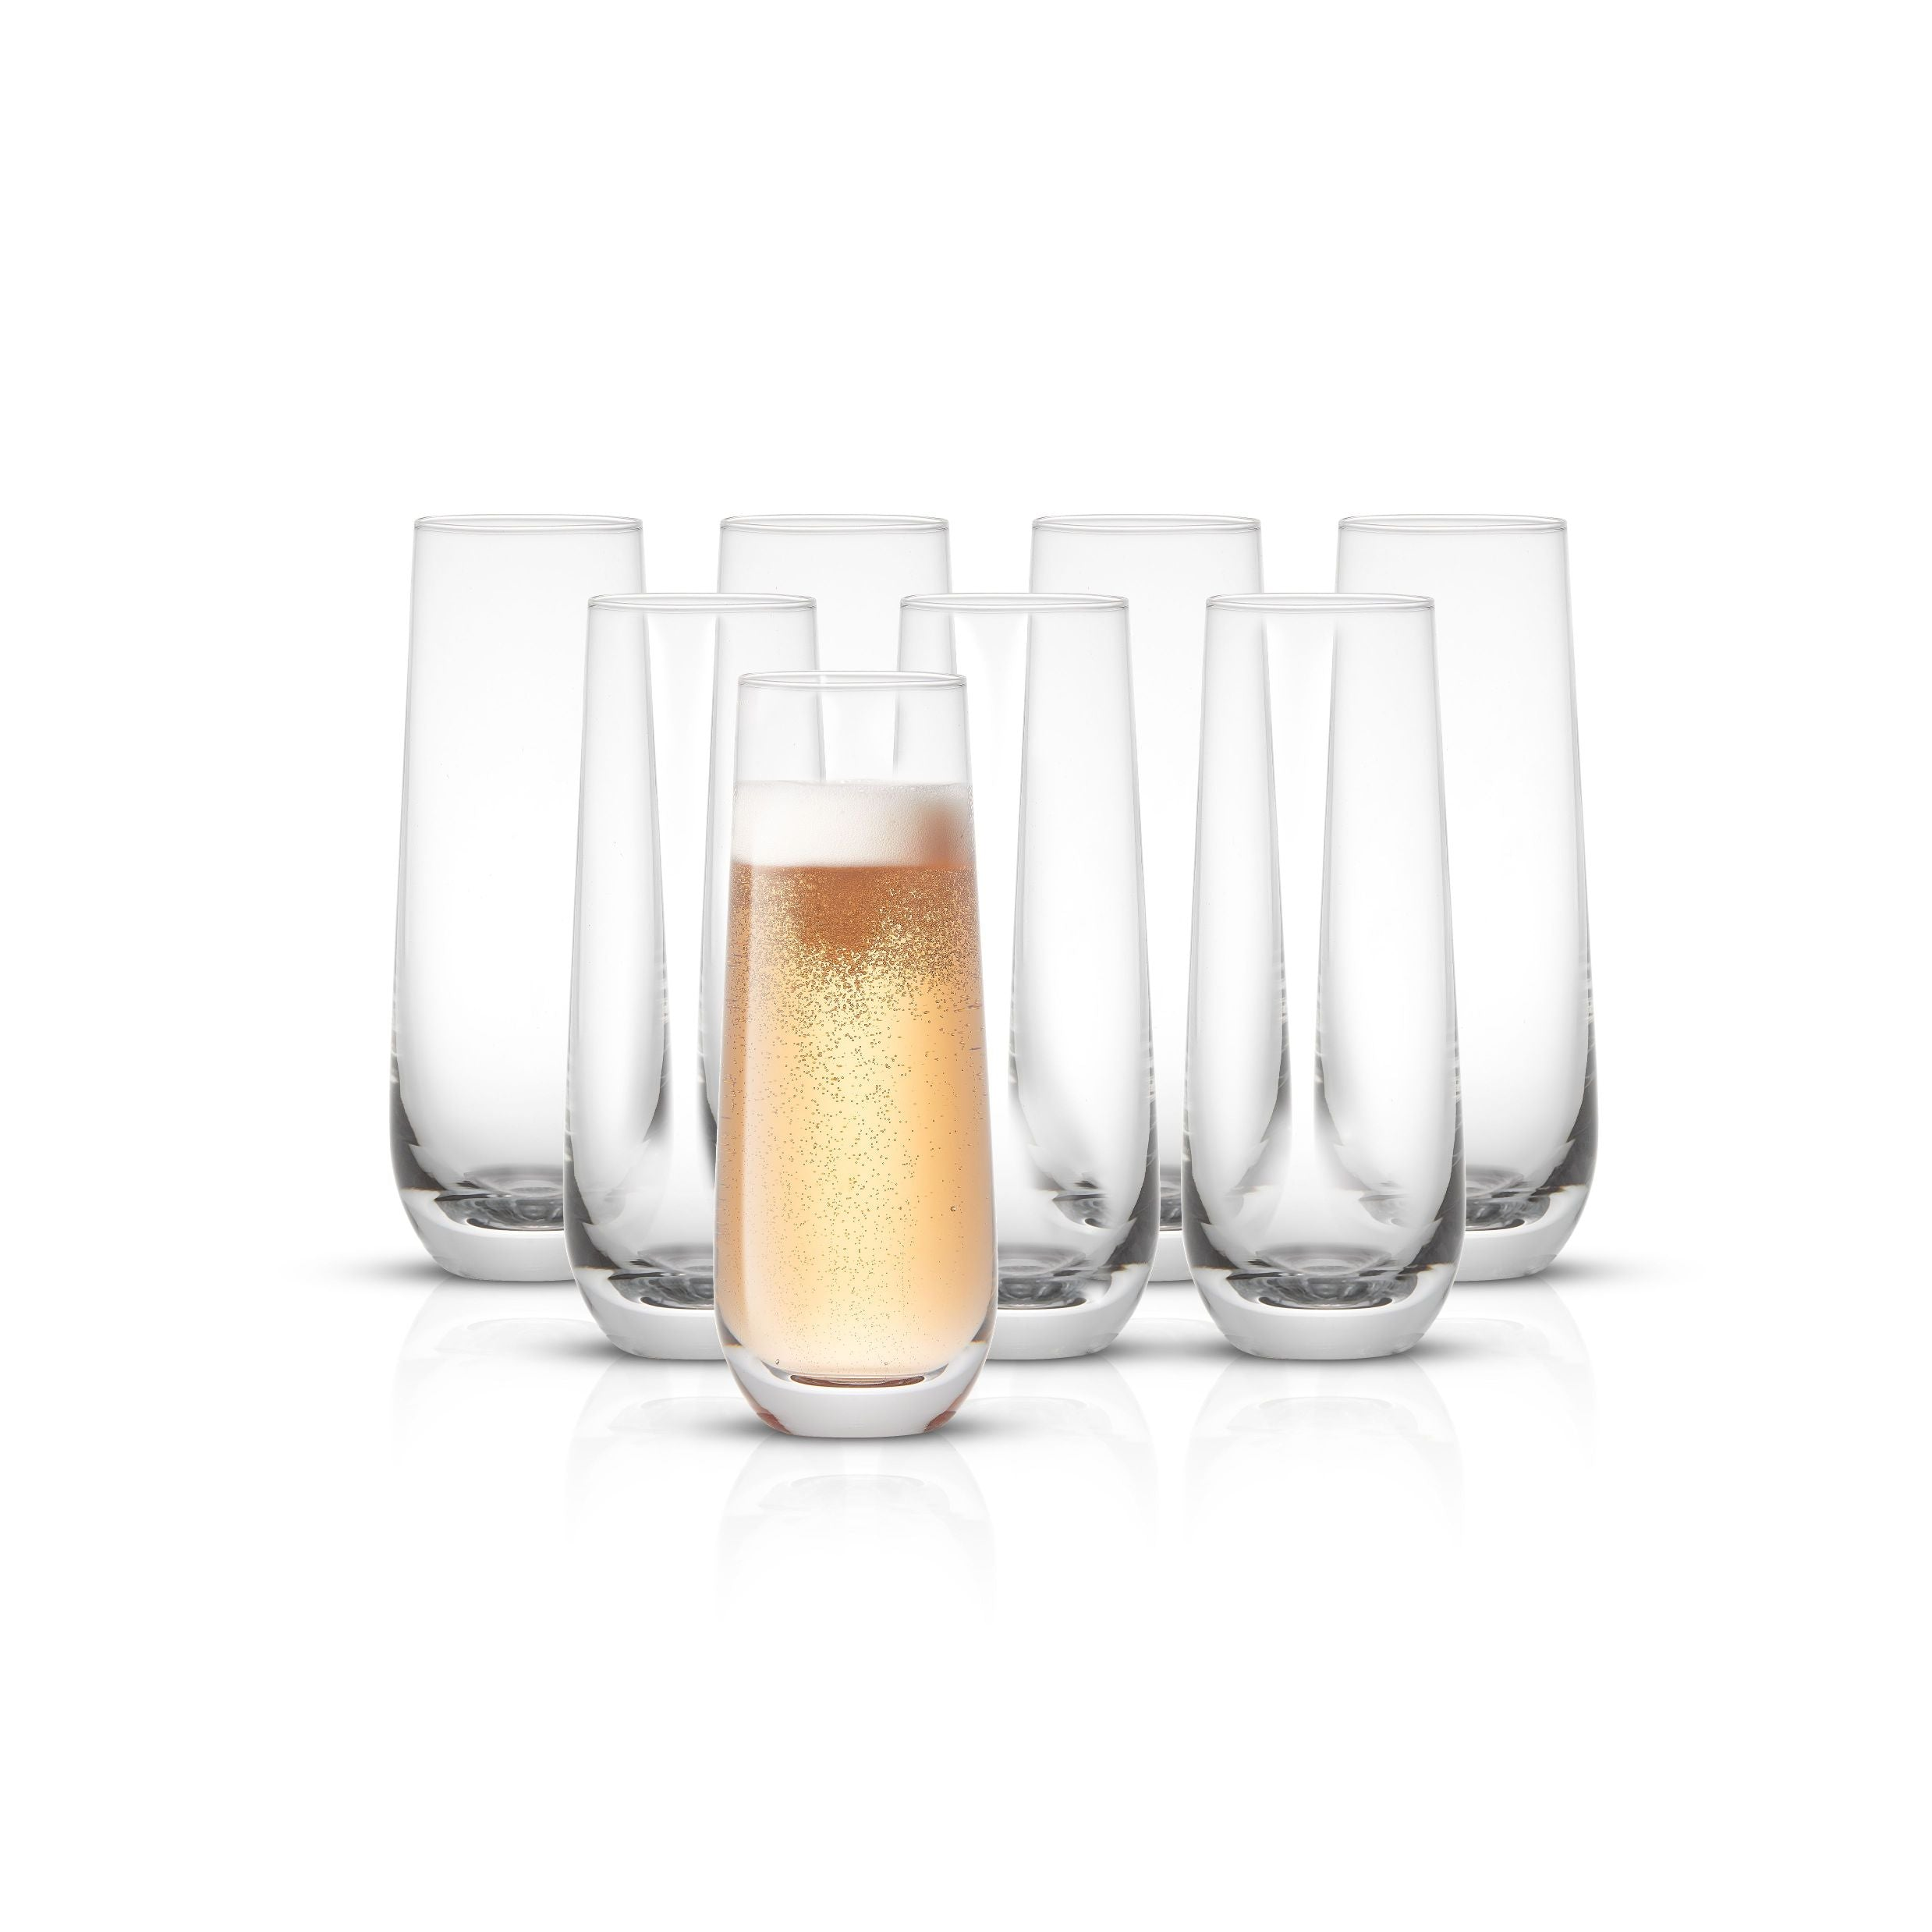 Milo Champagne Glasses Set of 8